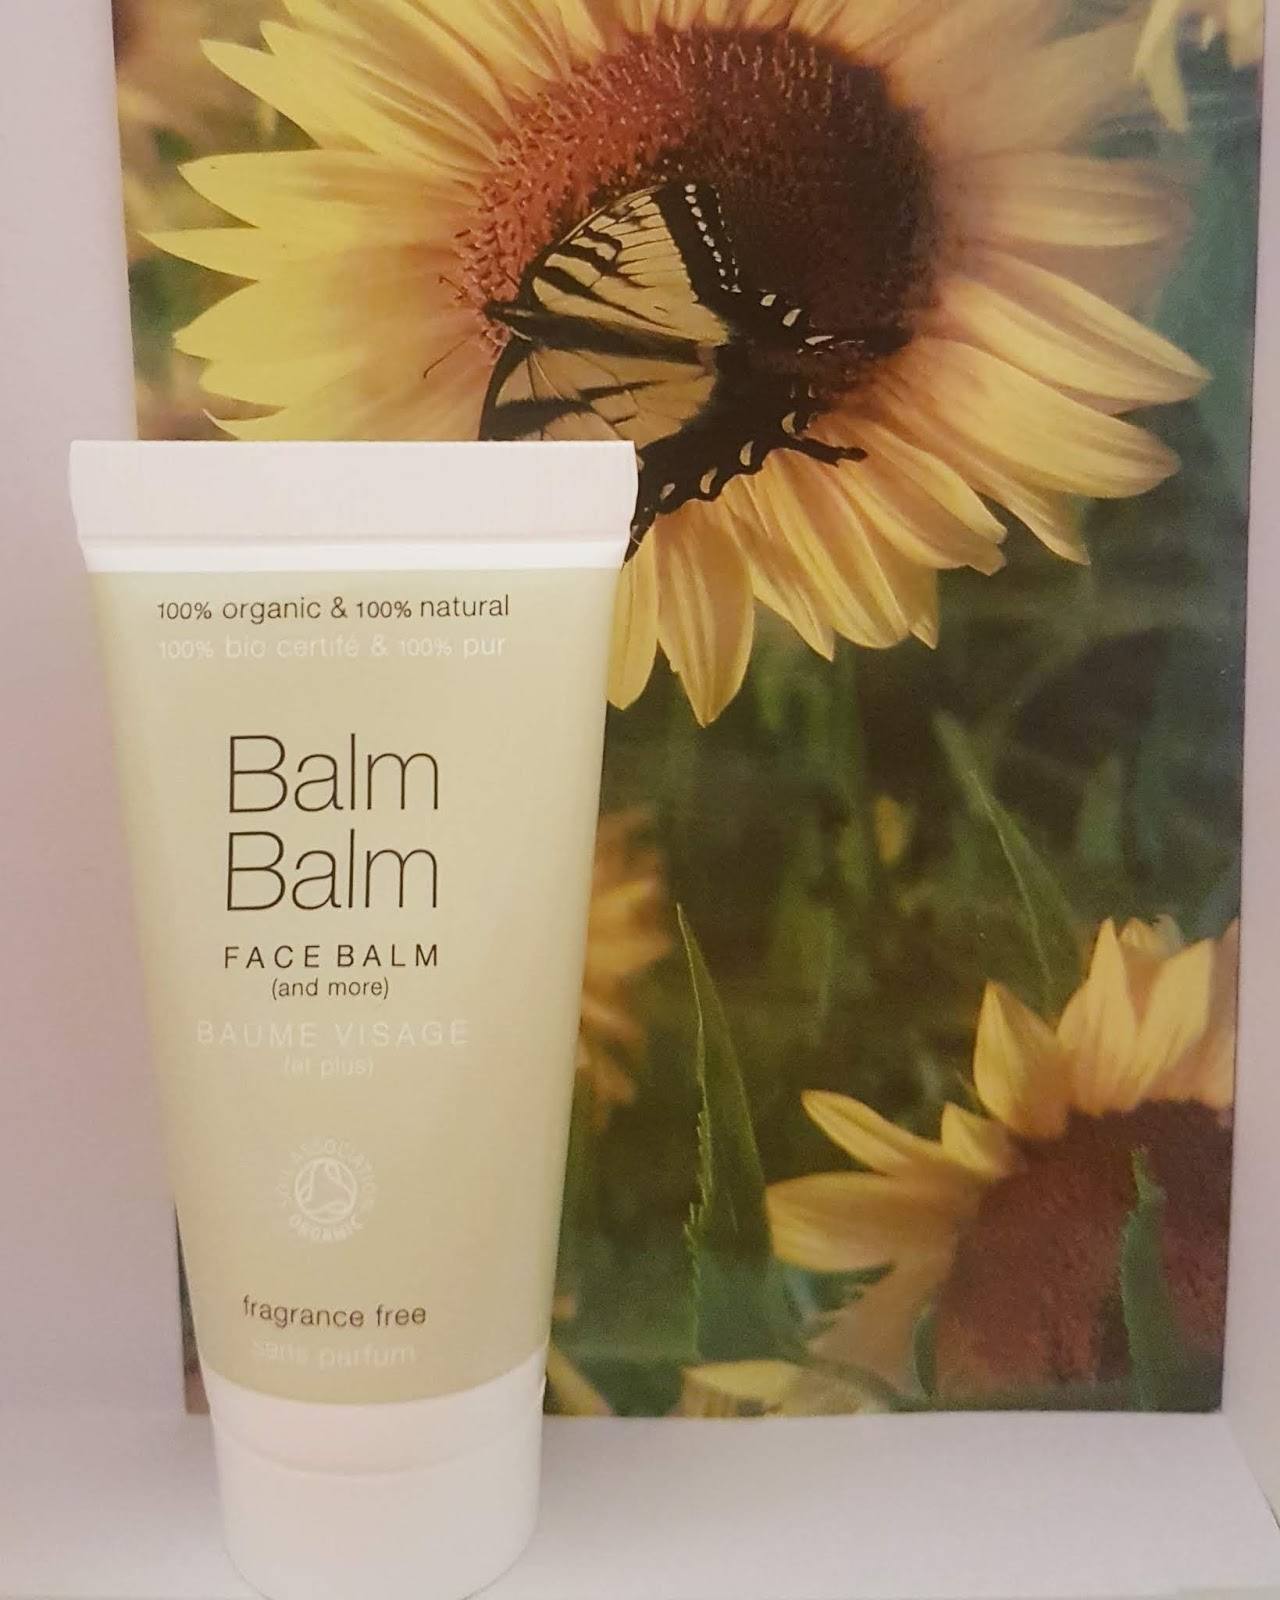 Balm Balm natural organic face balm tube